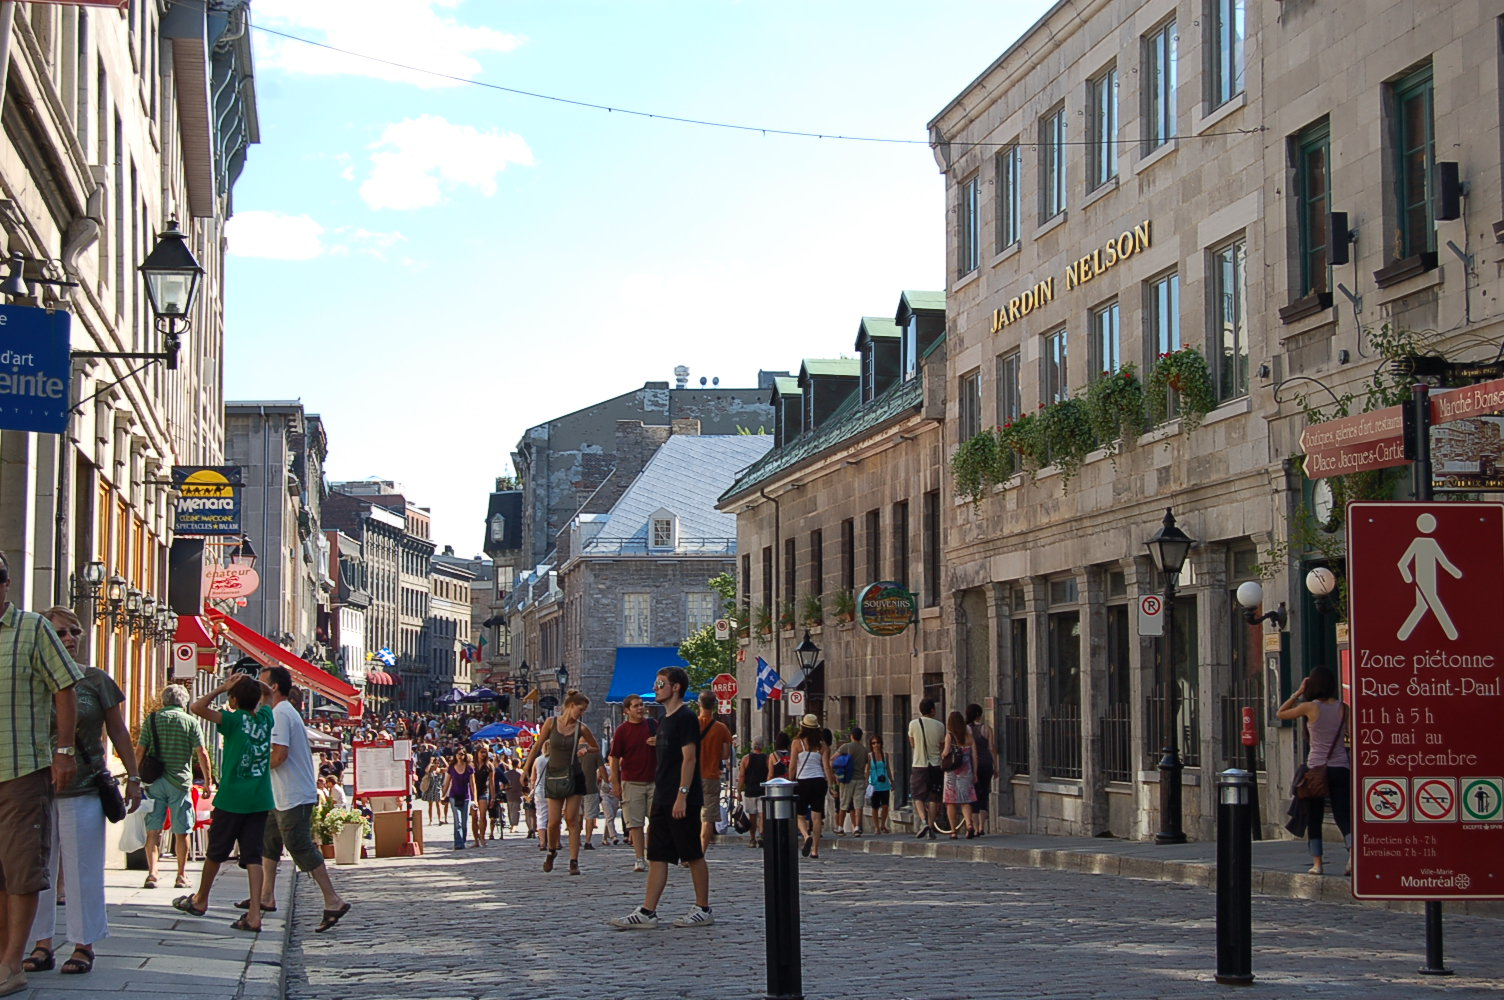 Old Montreal Montreal Canada Top 5 Things To Do First Time Visitor